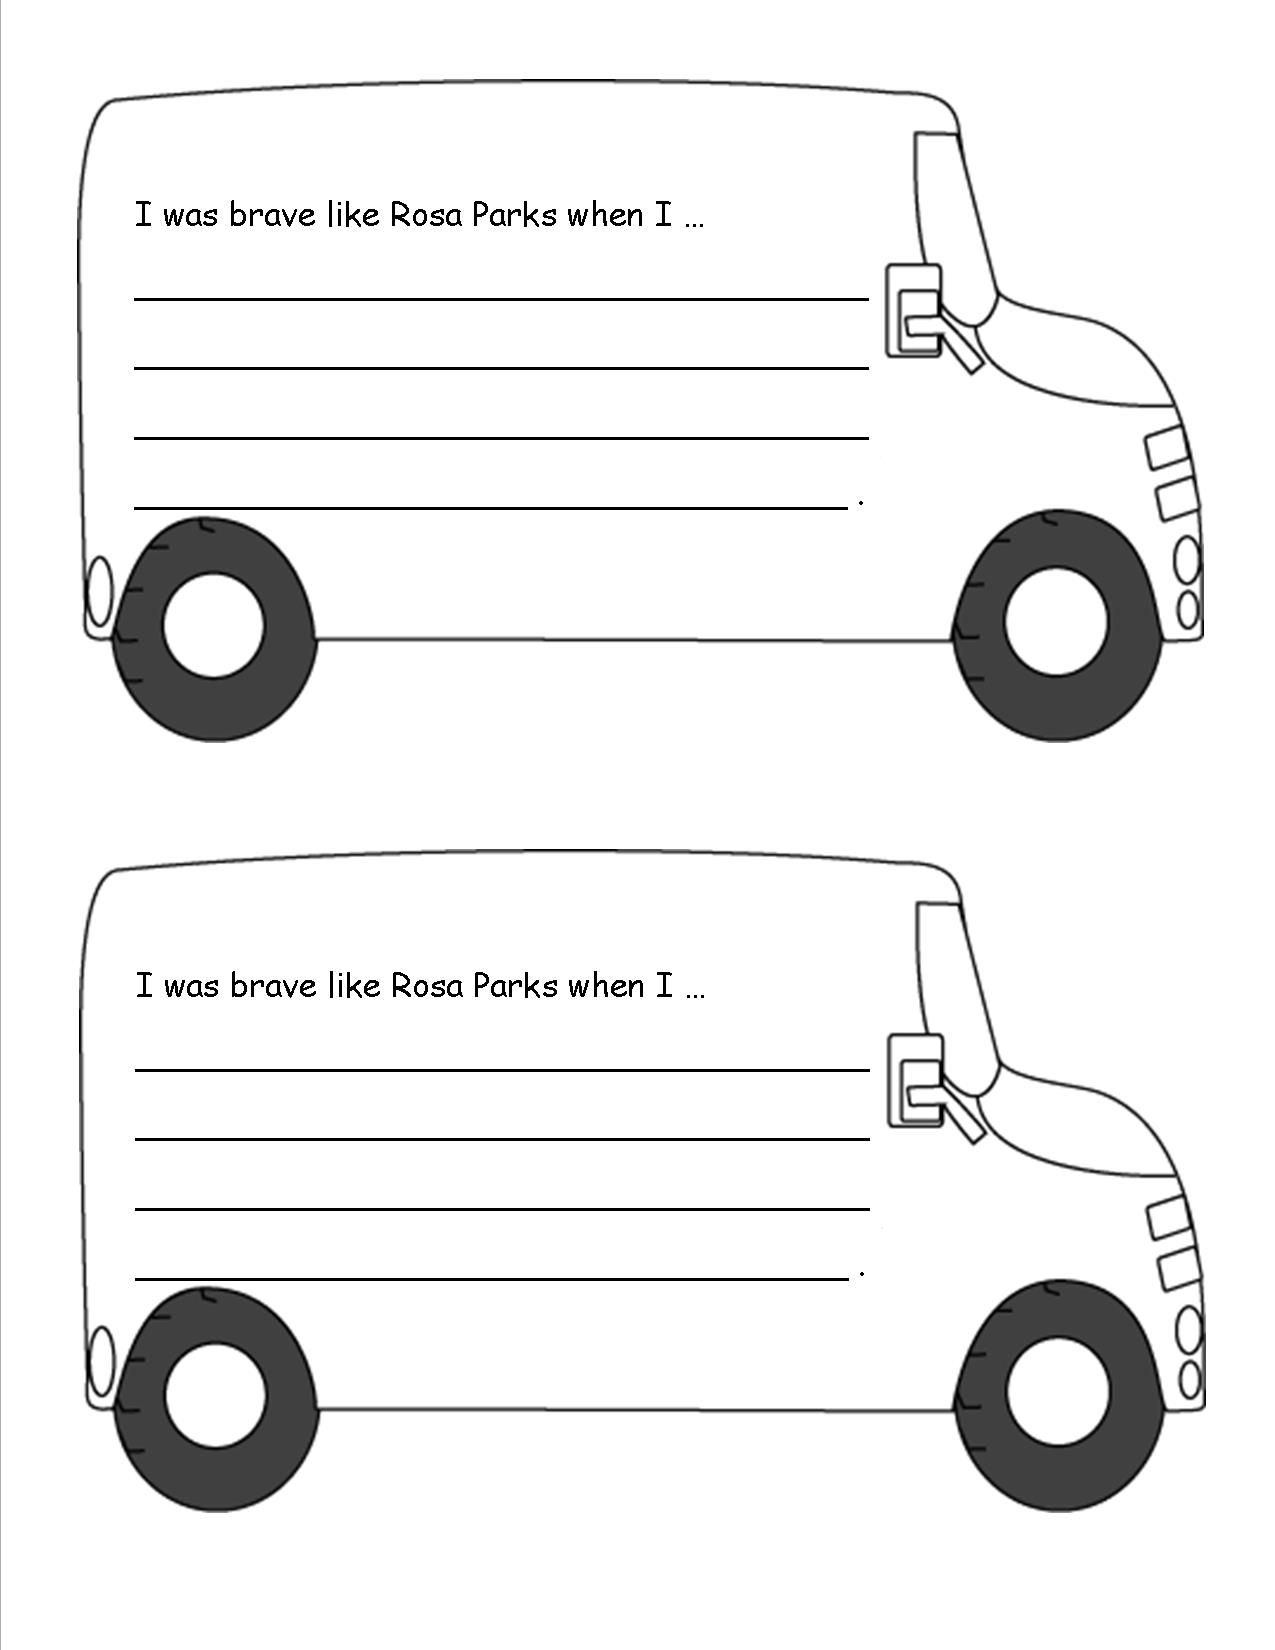 medium resolution of rosa parks worksheet this activity is great for students learning about rosa parks during black history month they can relate to rosa parks by explaining